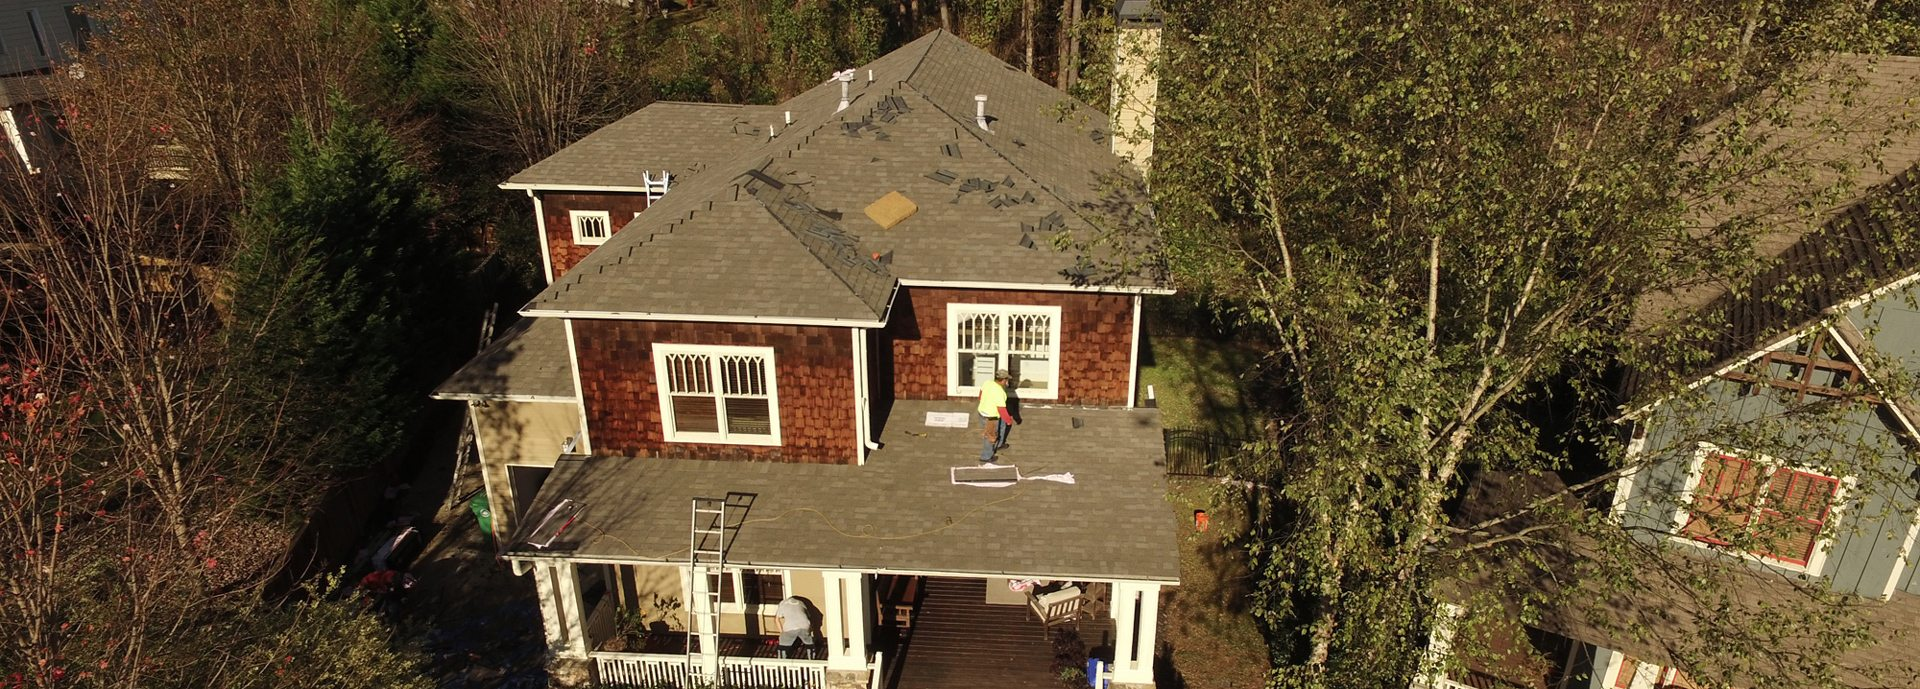 Roofing company Georgia and South Carolina